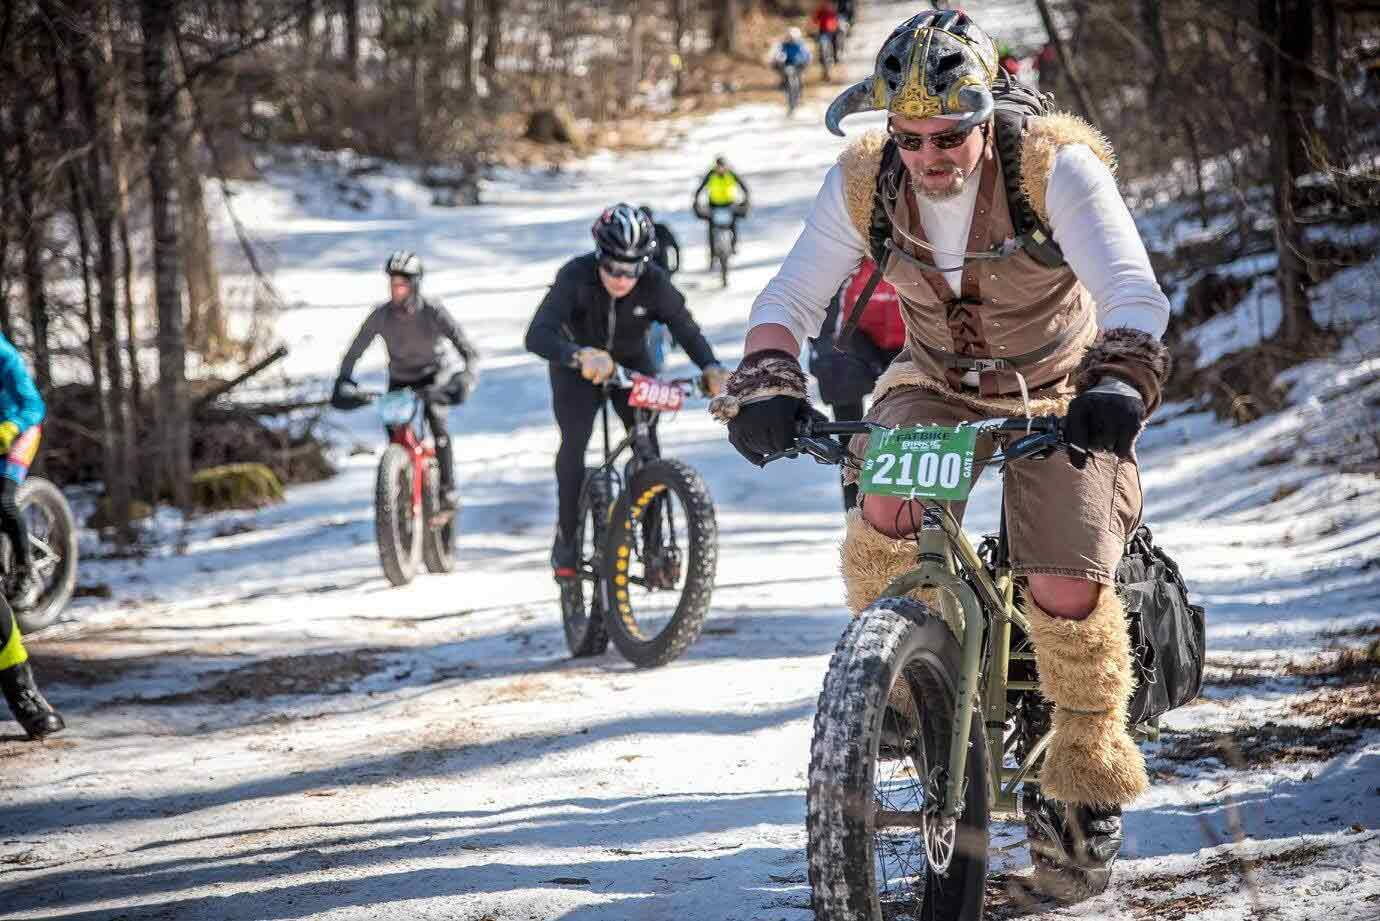 Cyclists ride up an icy road on fat bikes  in the woods with front cyclist wearing viking clothing